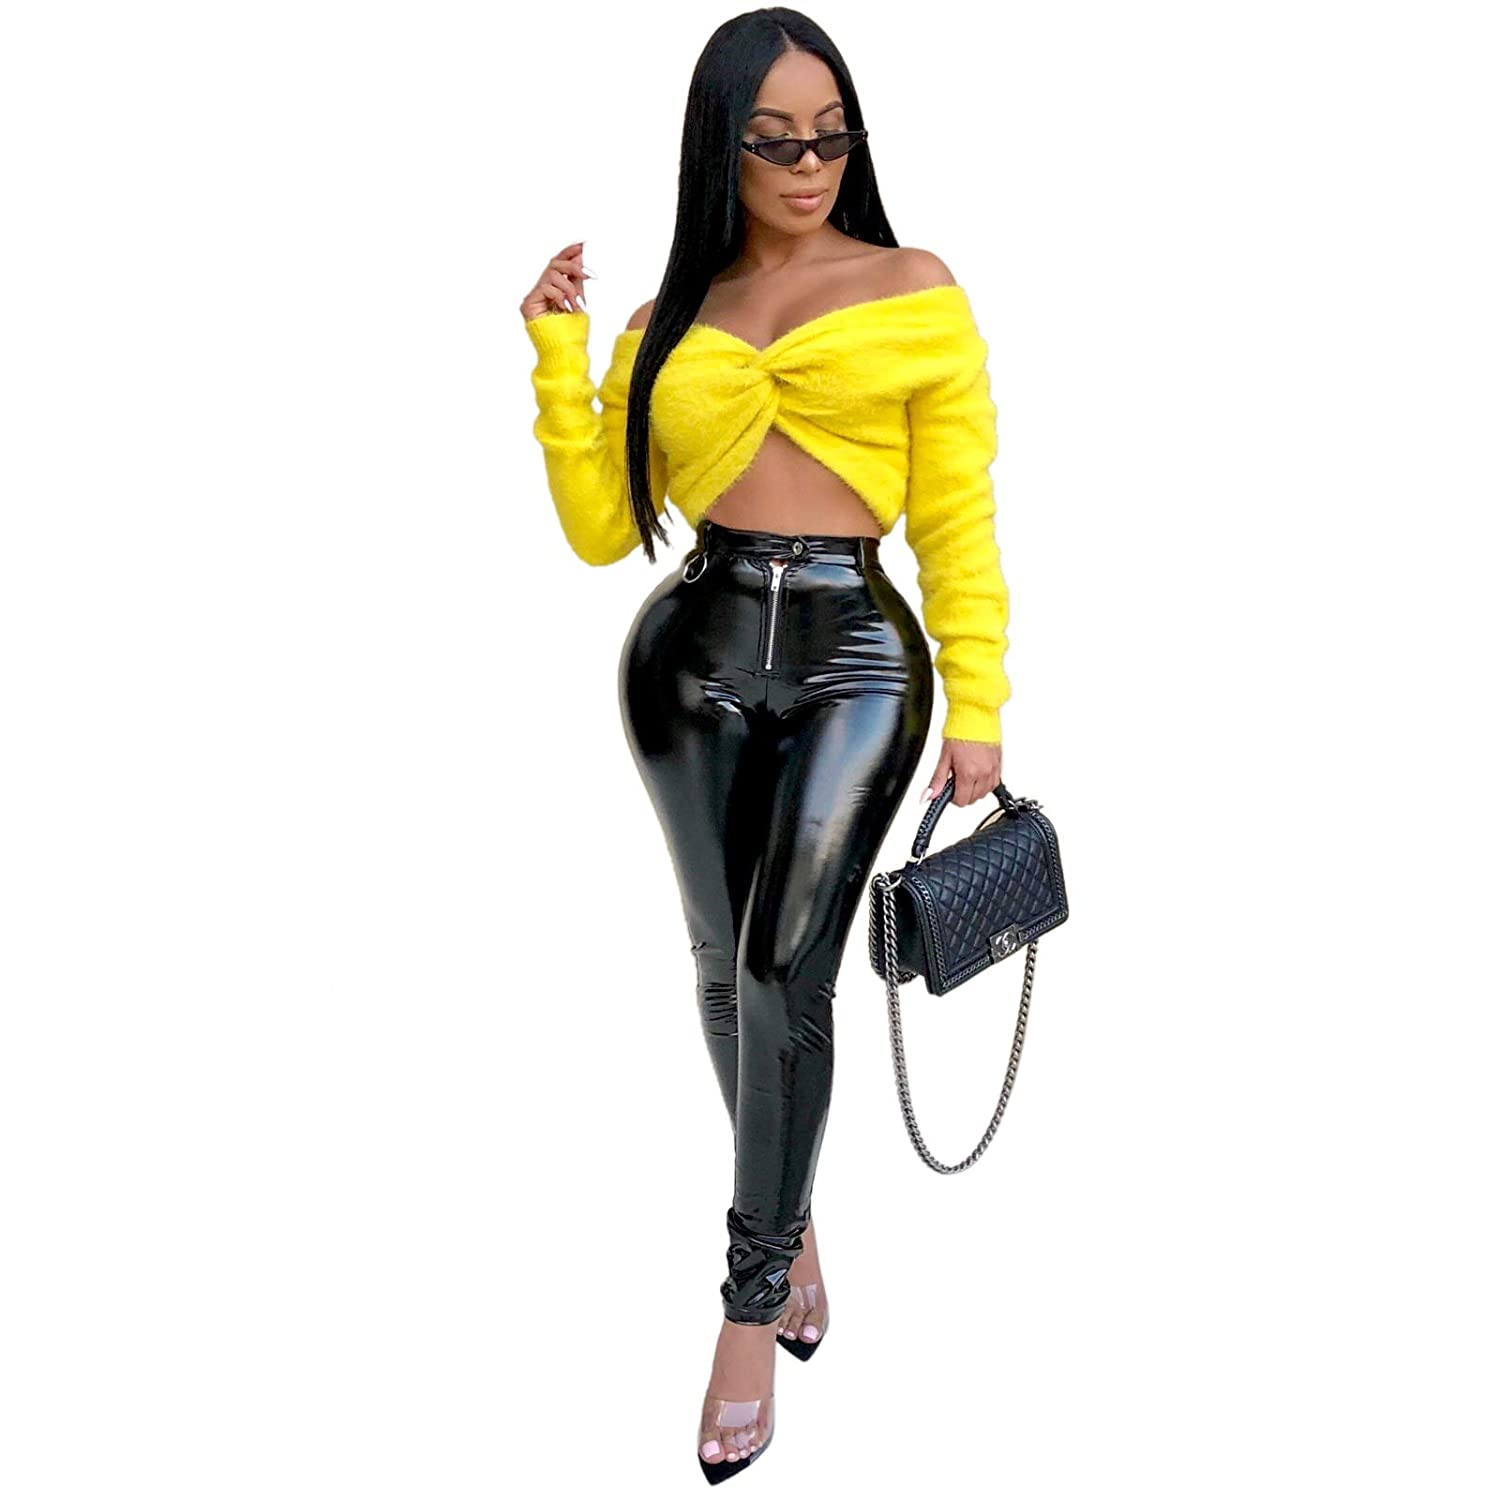 5c09513a845a3 ED Express Women Bodycon PU Long Pants Sexy High Waist Skinny Leather  Coated Leggings Zipper Button Fleece Lined Slim Fit at Amazon Women's  Clothing store: